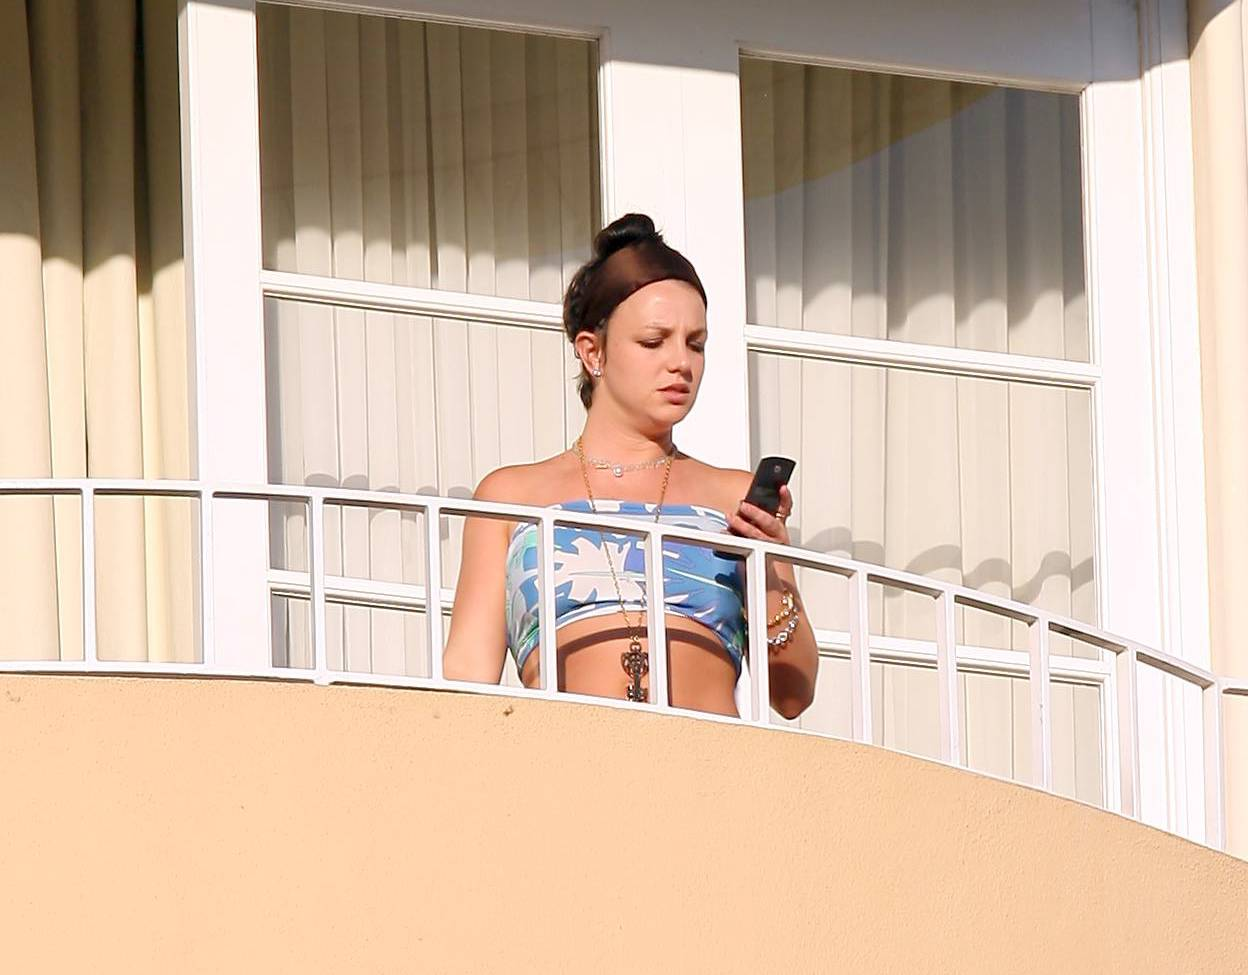 53187_celeb-city.eu_Britney_Spears_at_hotel_in_Beverly_Hills_08_123_1173lo.jpg